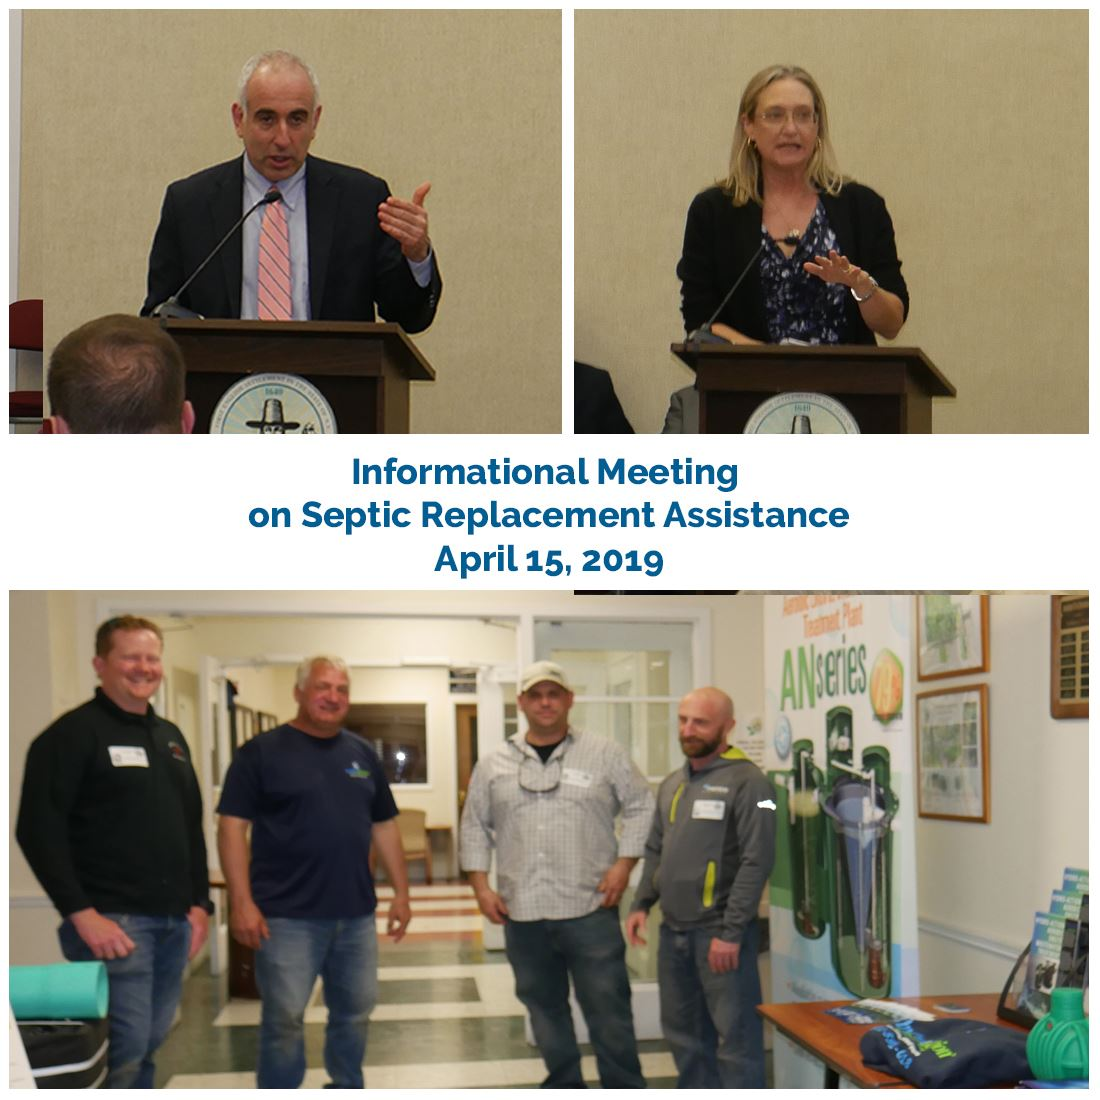 Septic Replacement Meeting